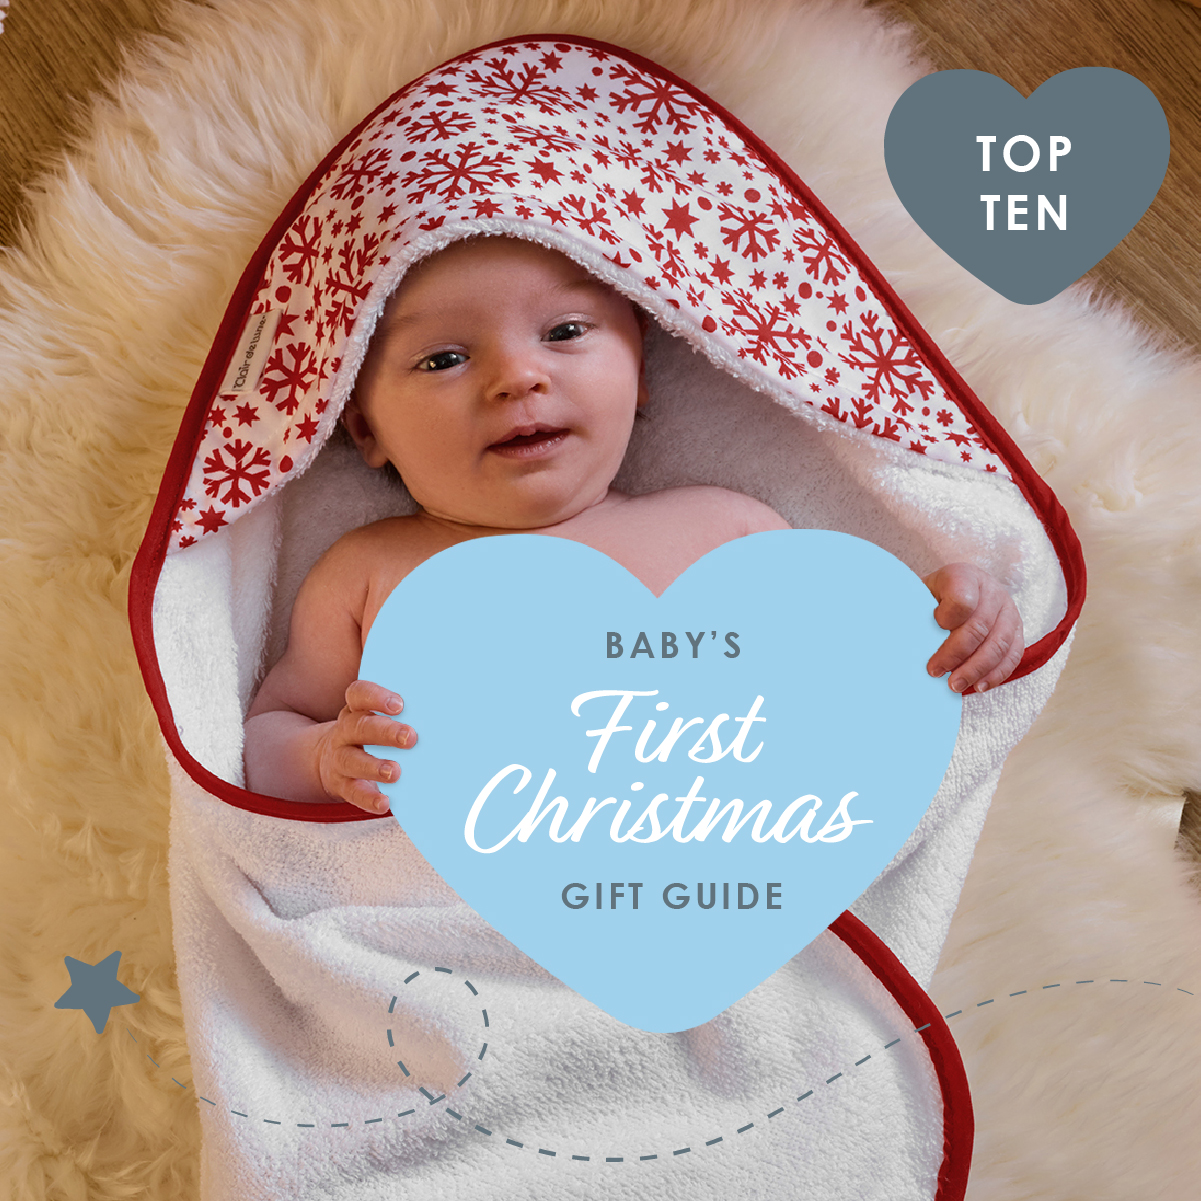 Top products to celebrate baby's first Christmas!